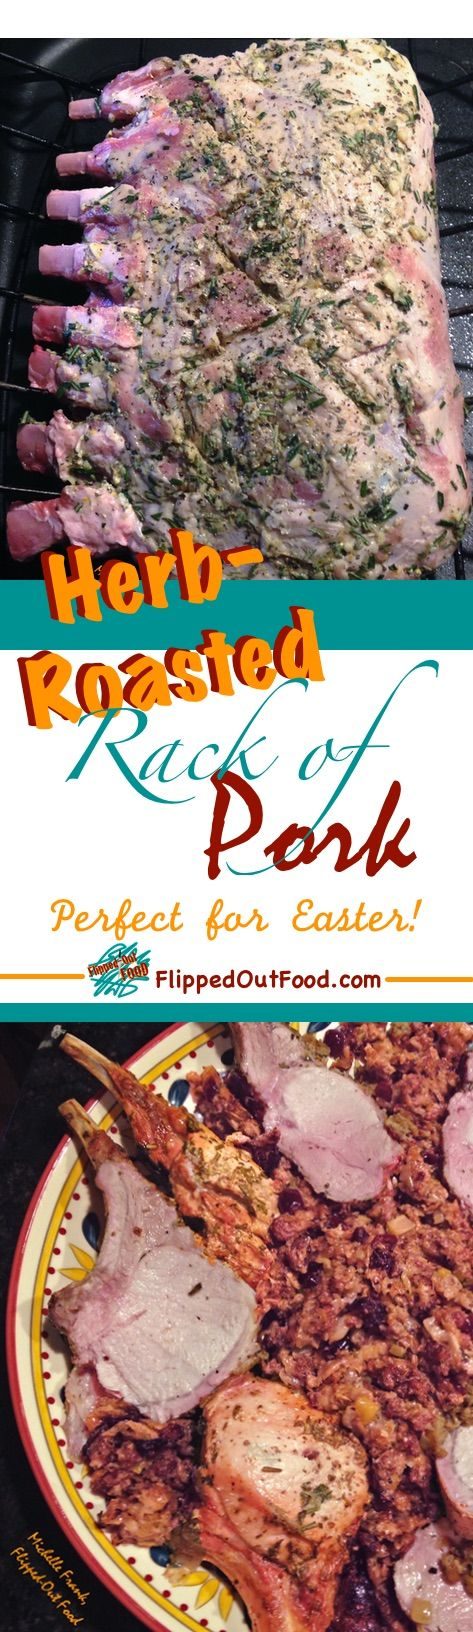 Herb-Roasted Rack of Pork is an easy meal that's fancy enough to impress at Christmas, Easter, or any special-occasion dinner.  via @FlippedOutFood